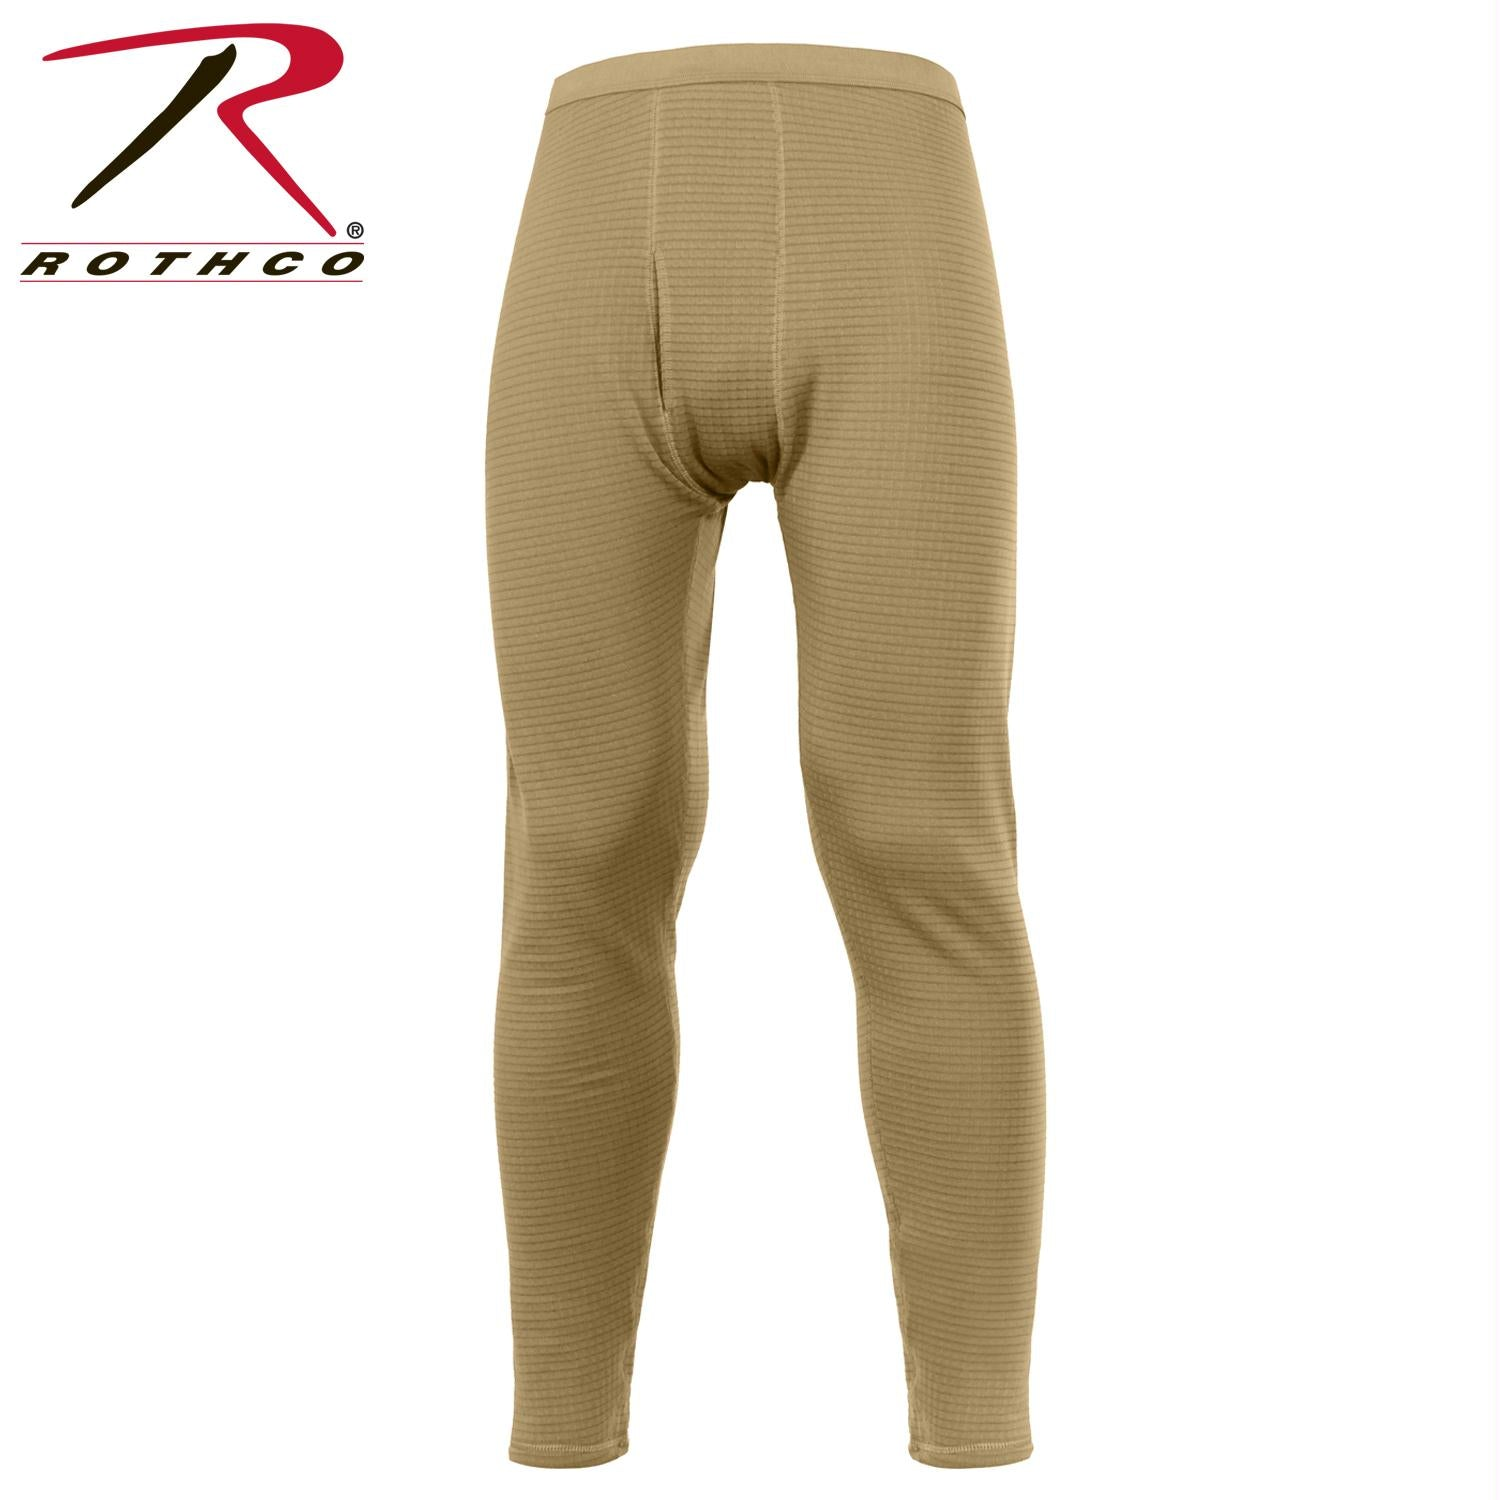 Rothco Military E.C.W.C.S. Generation III Mid-Weight Bottoms